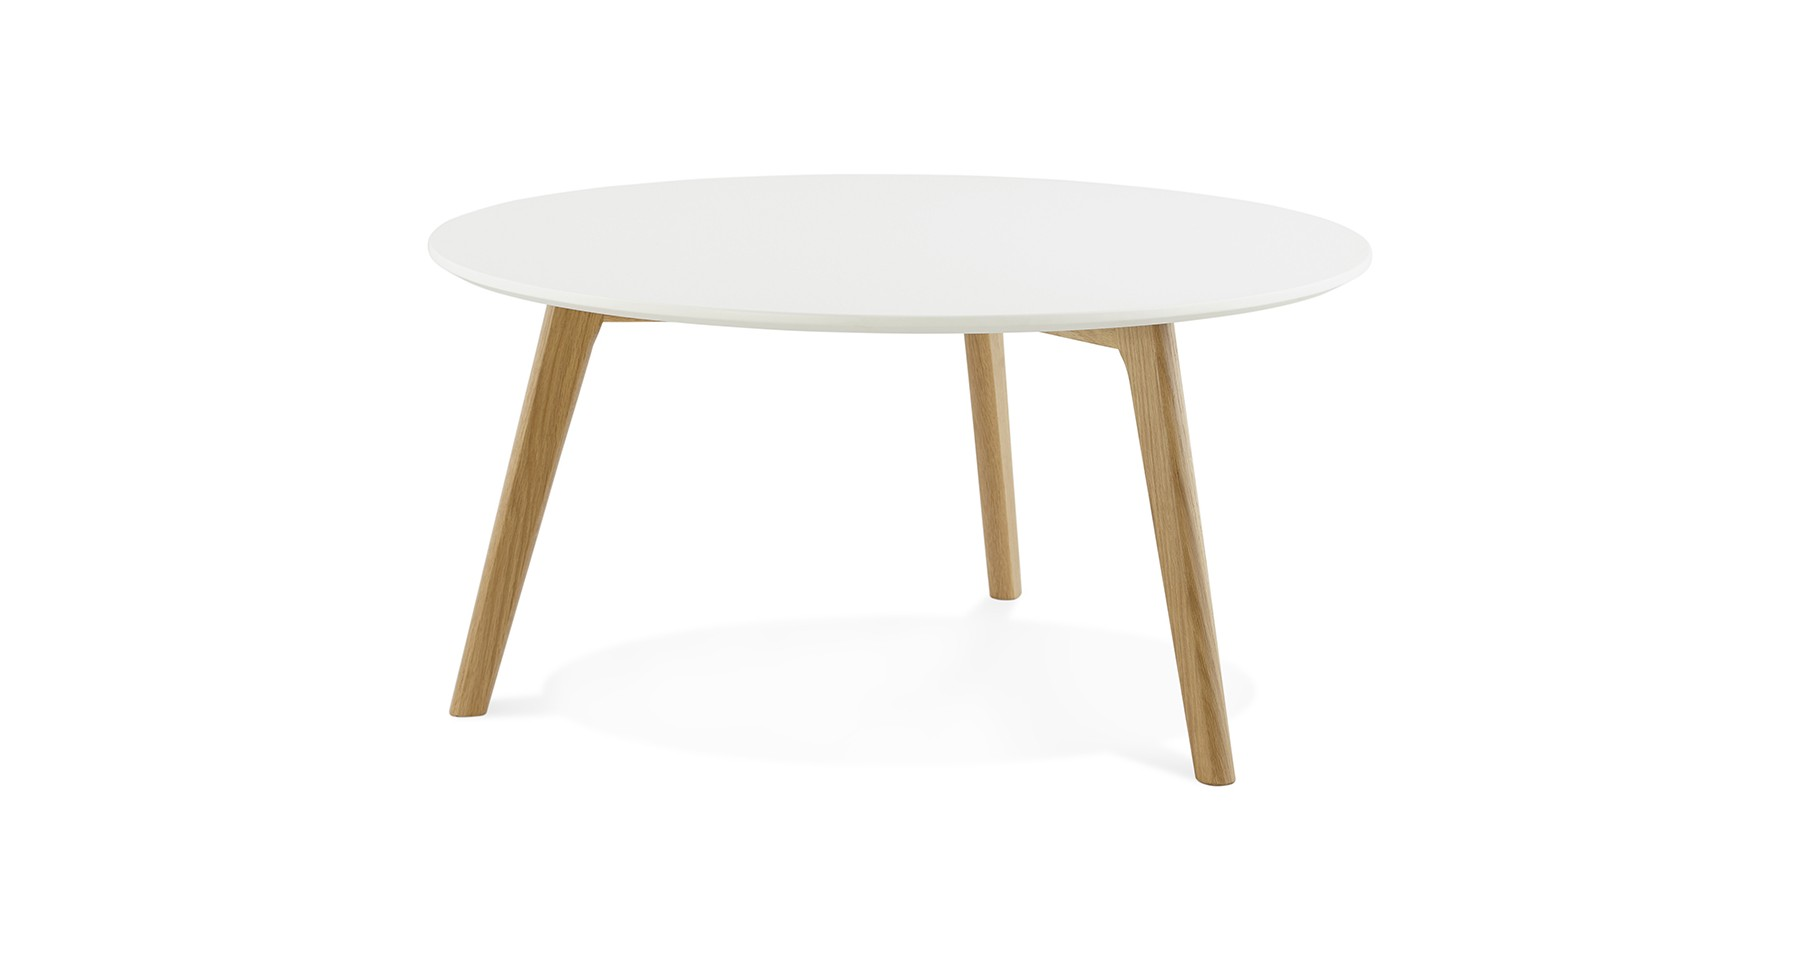 Table Ronde 90 Cm Table Basse Ronde Diamètre 90 Cm Blanche Design Scandinave